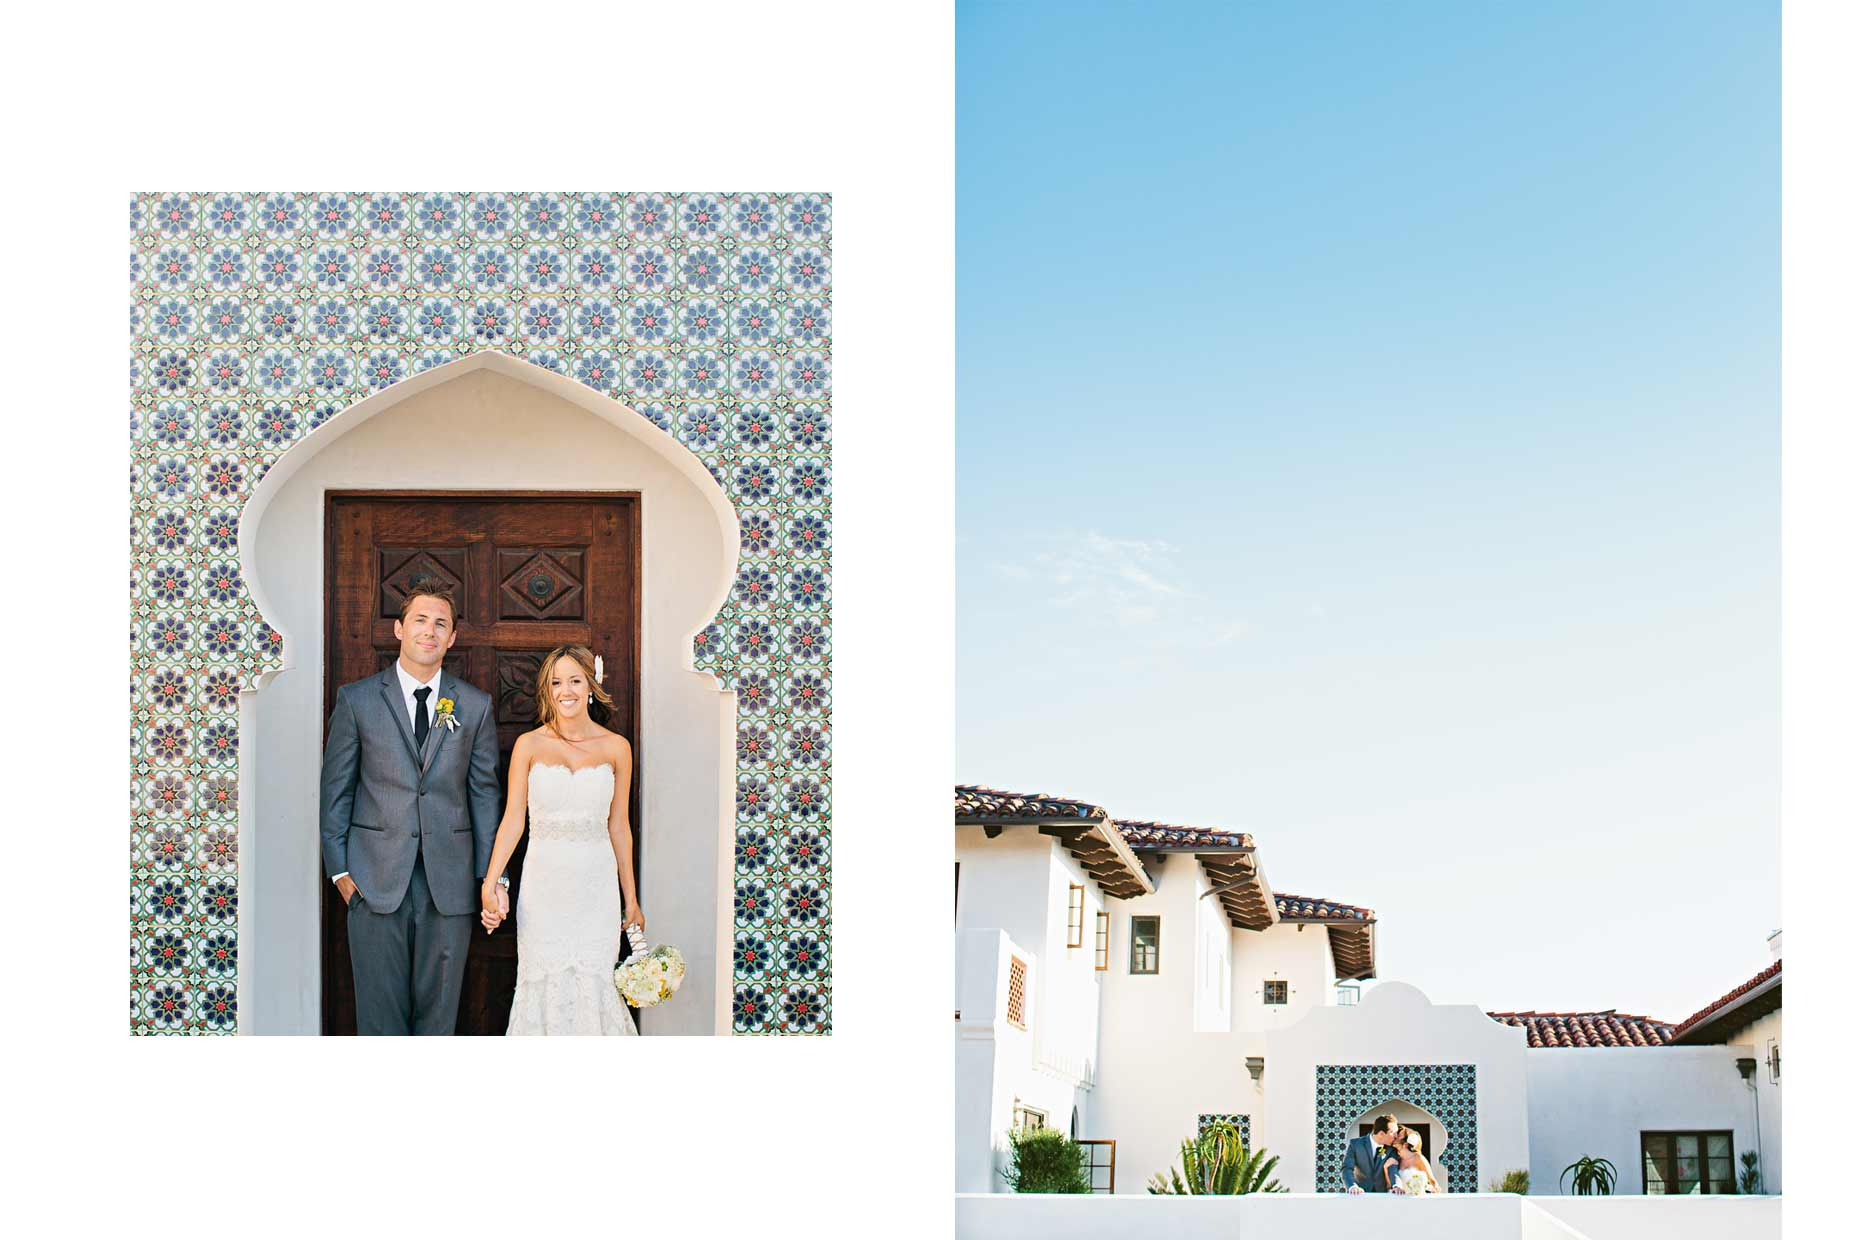 21-Malibu-Destination-Wedding_Pierre-olivier-Photography-